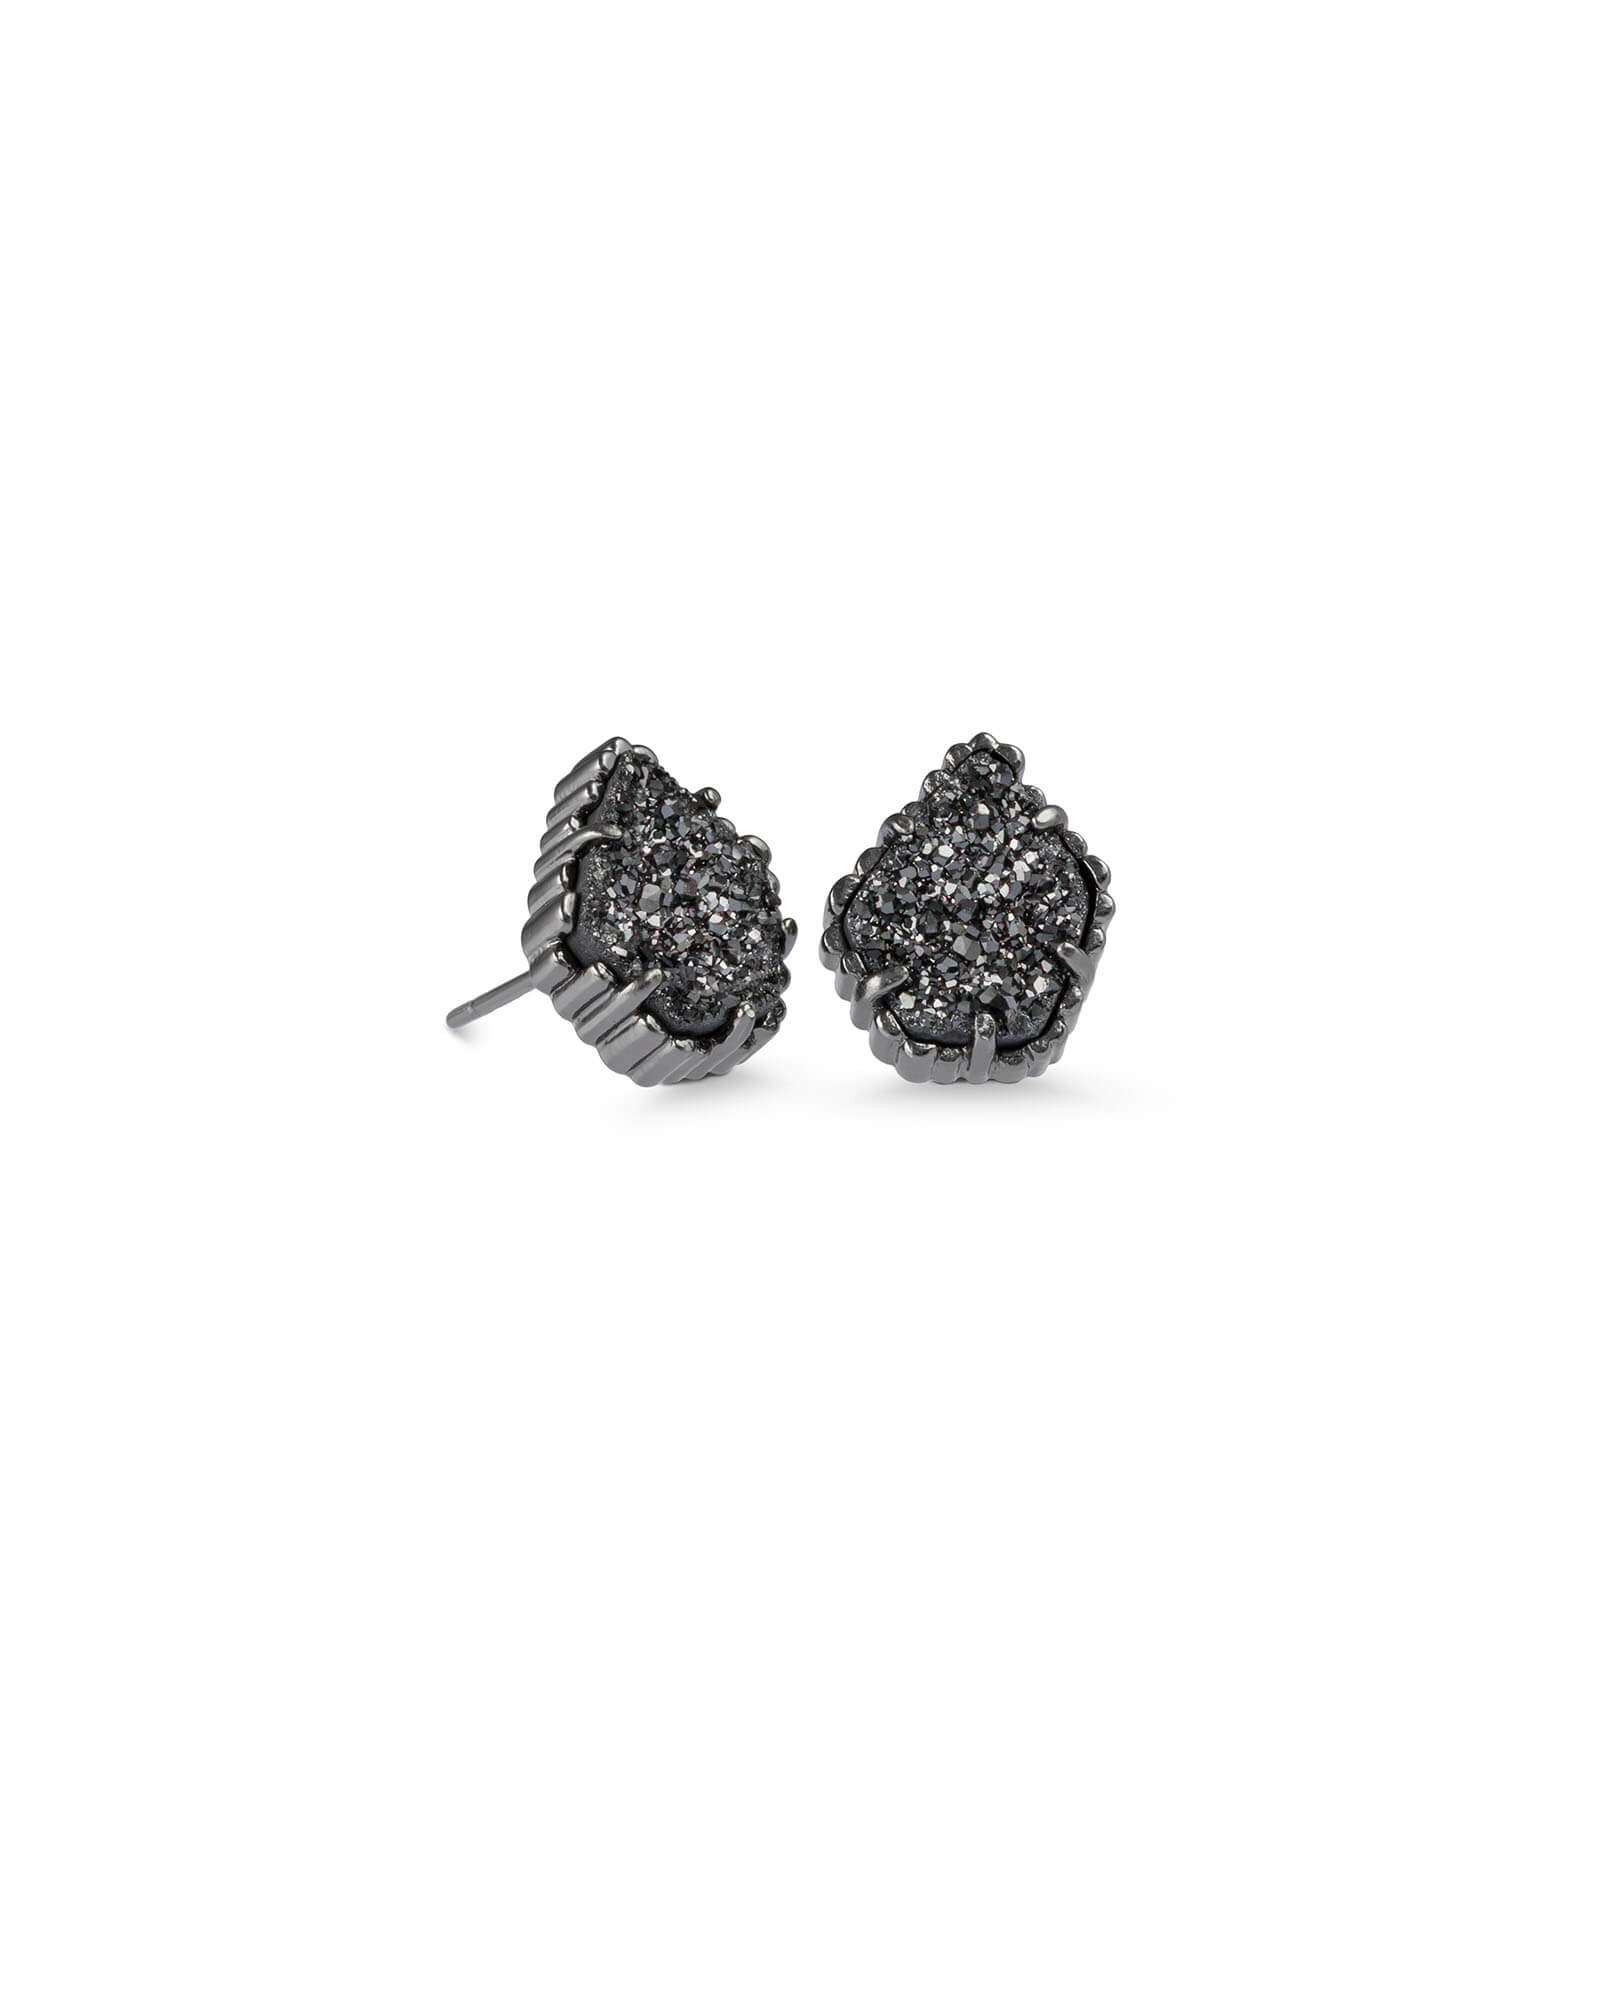 Tessa Stud Earrings in Gunmetal